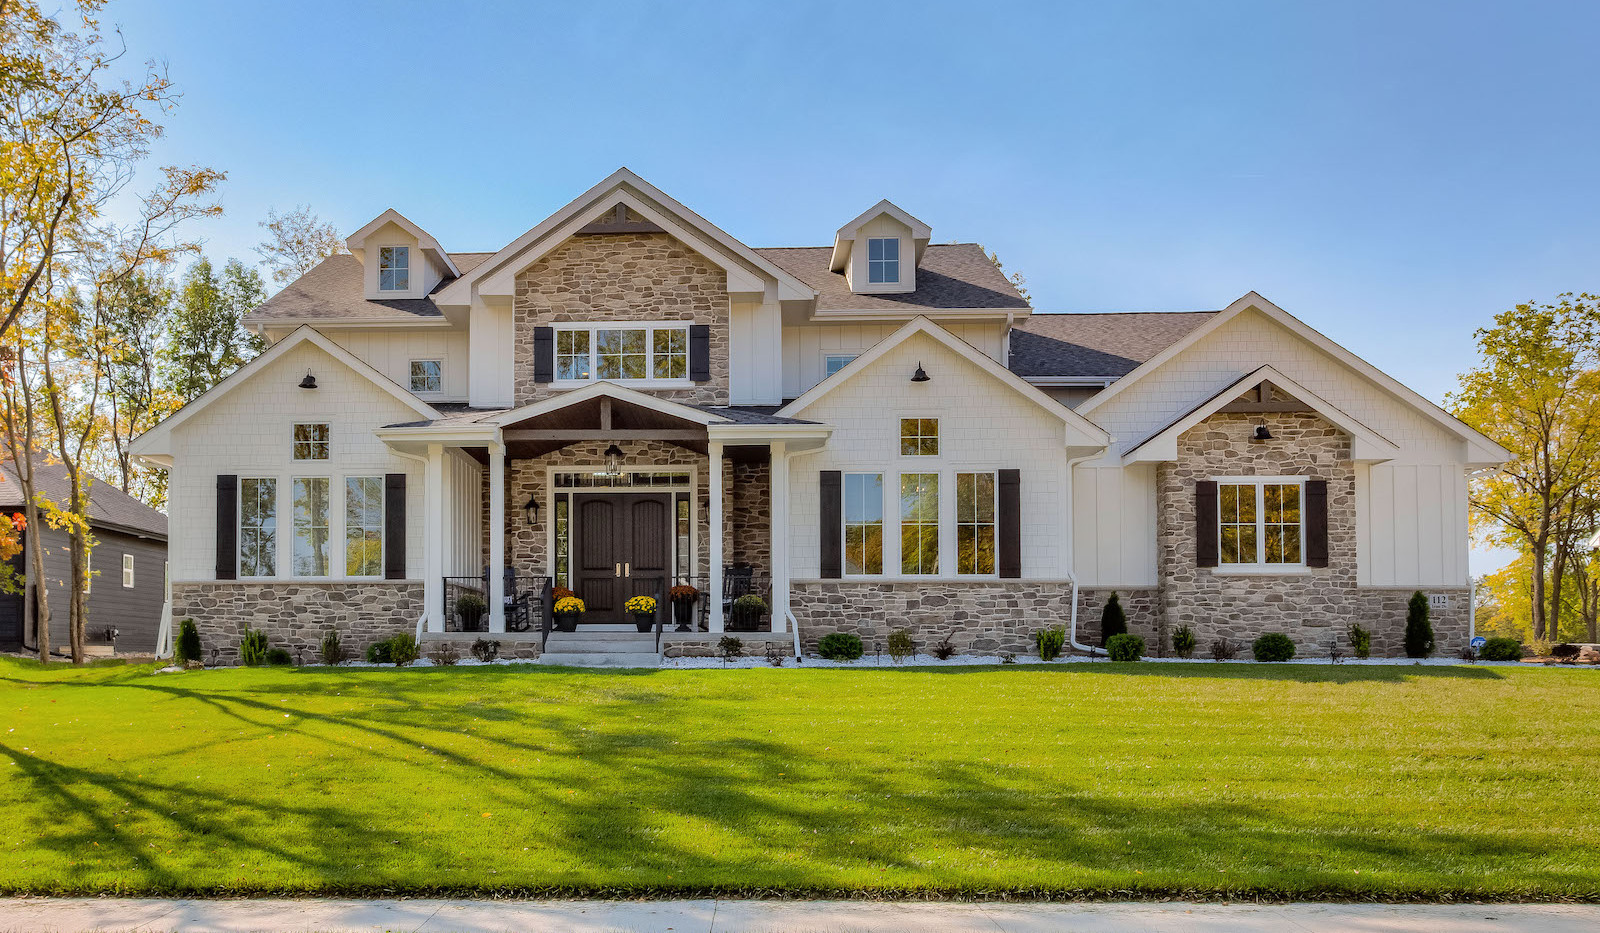 Built by Bella Homes